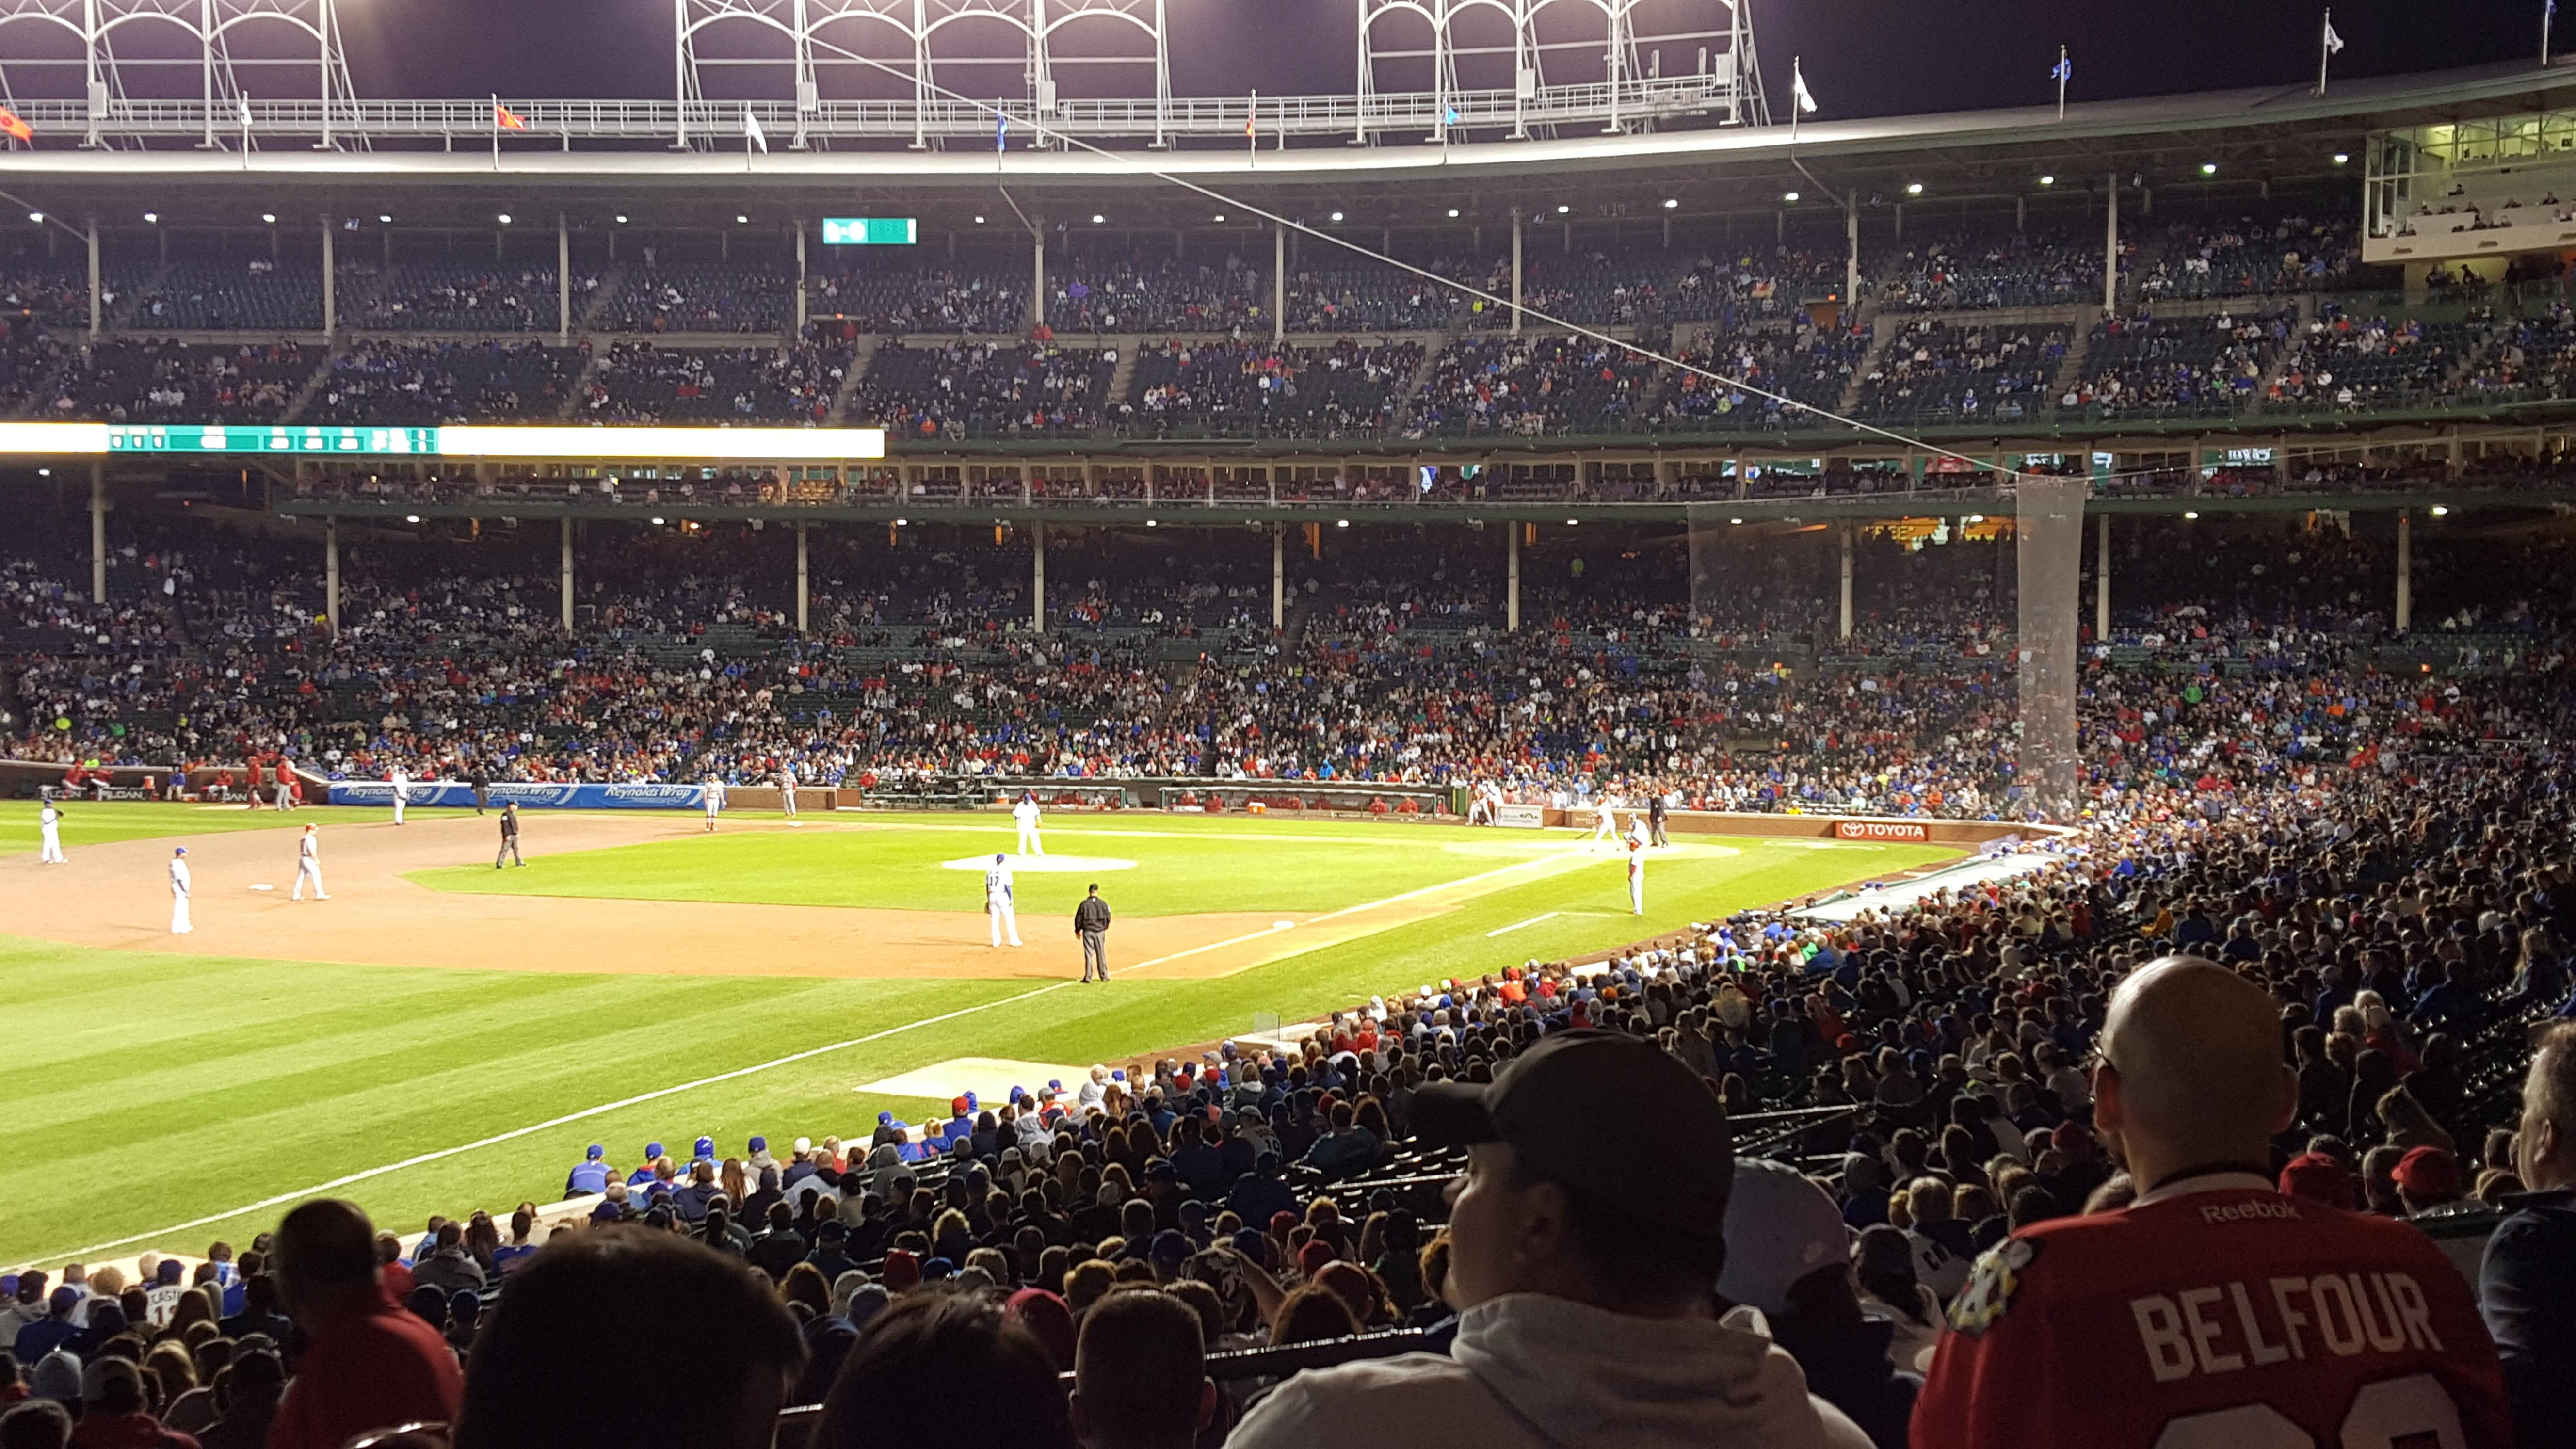 Wrigley Field section 204 row 7 seat 106 - Chicago Cubs vs ...